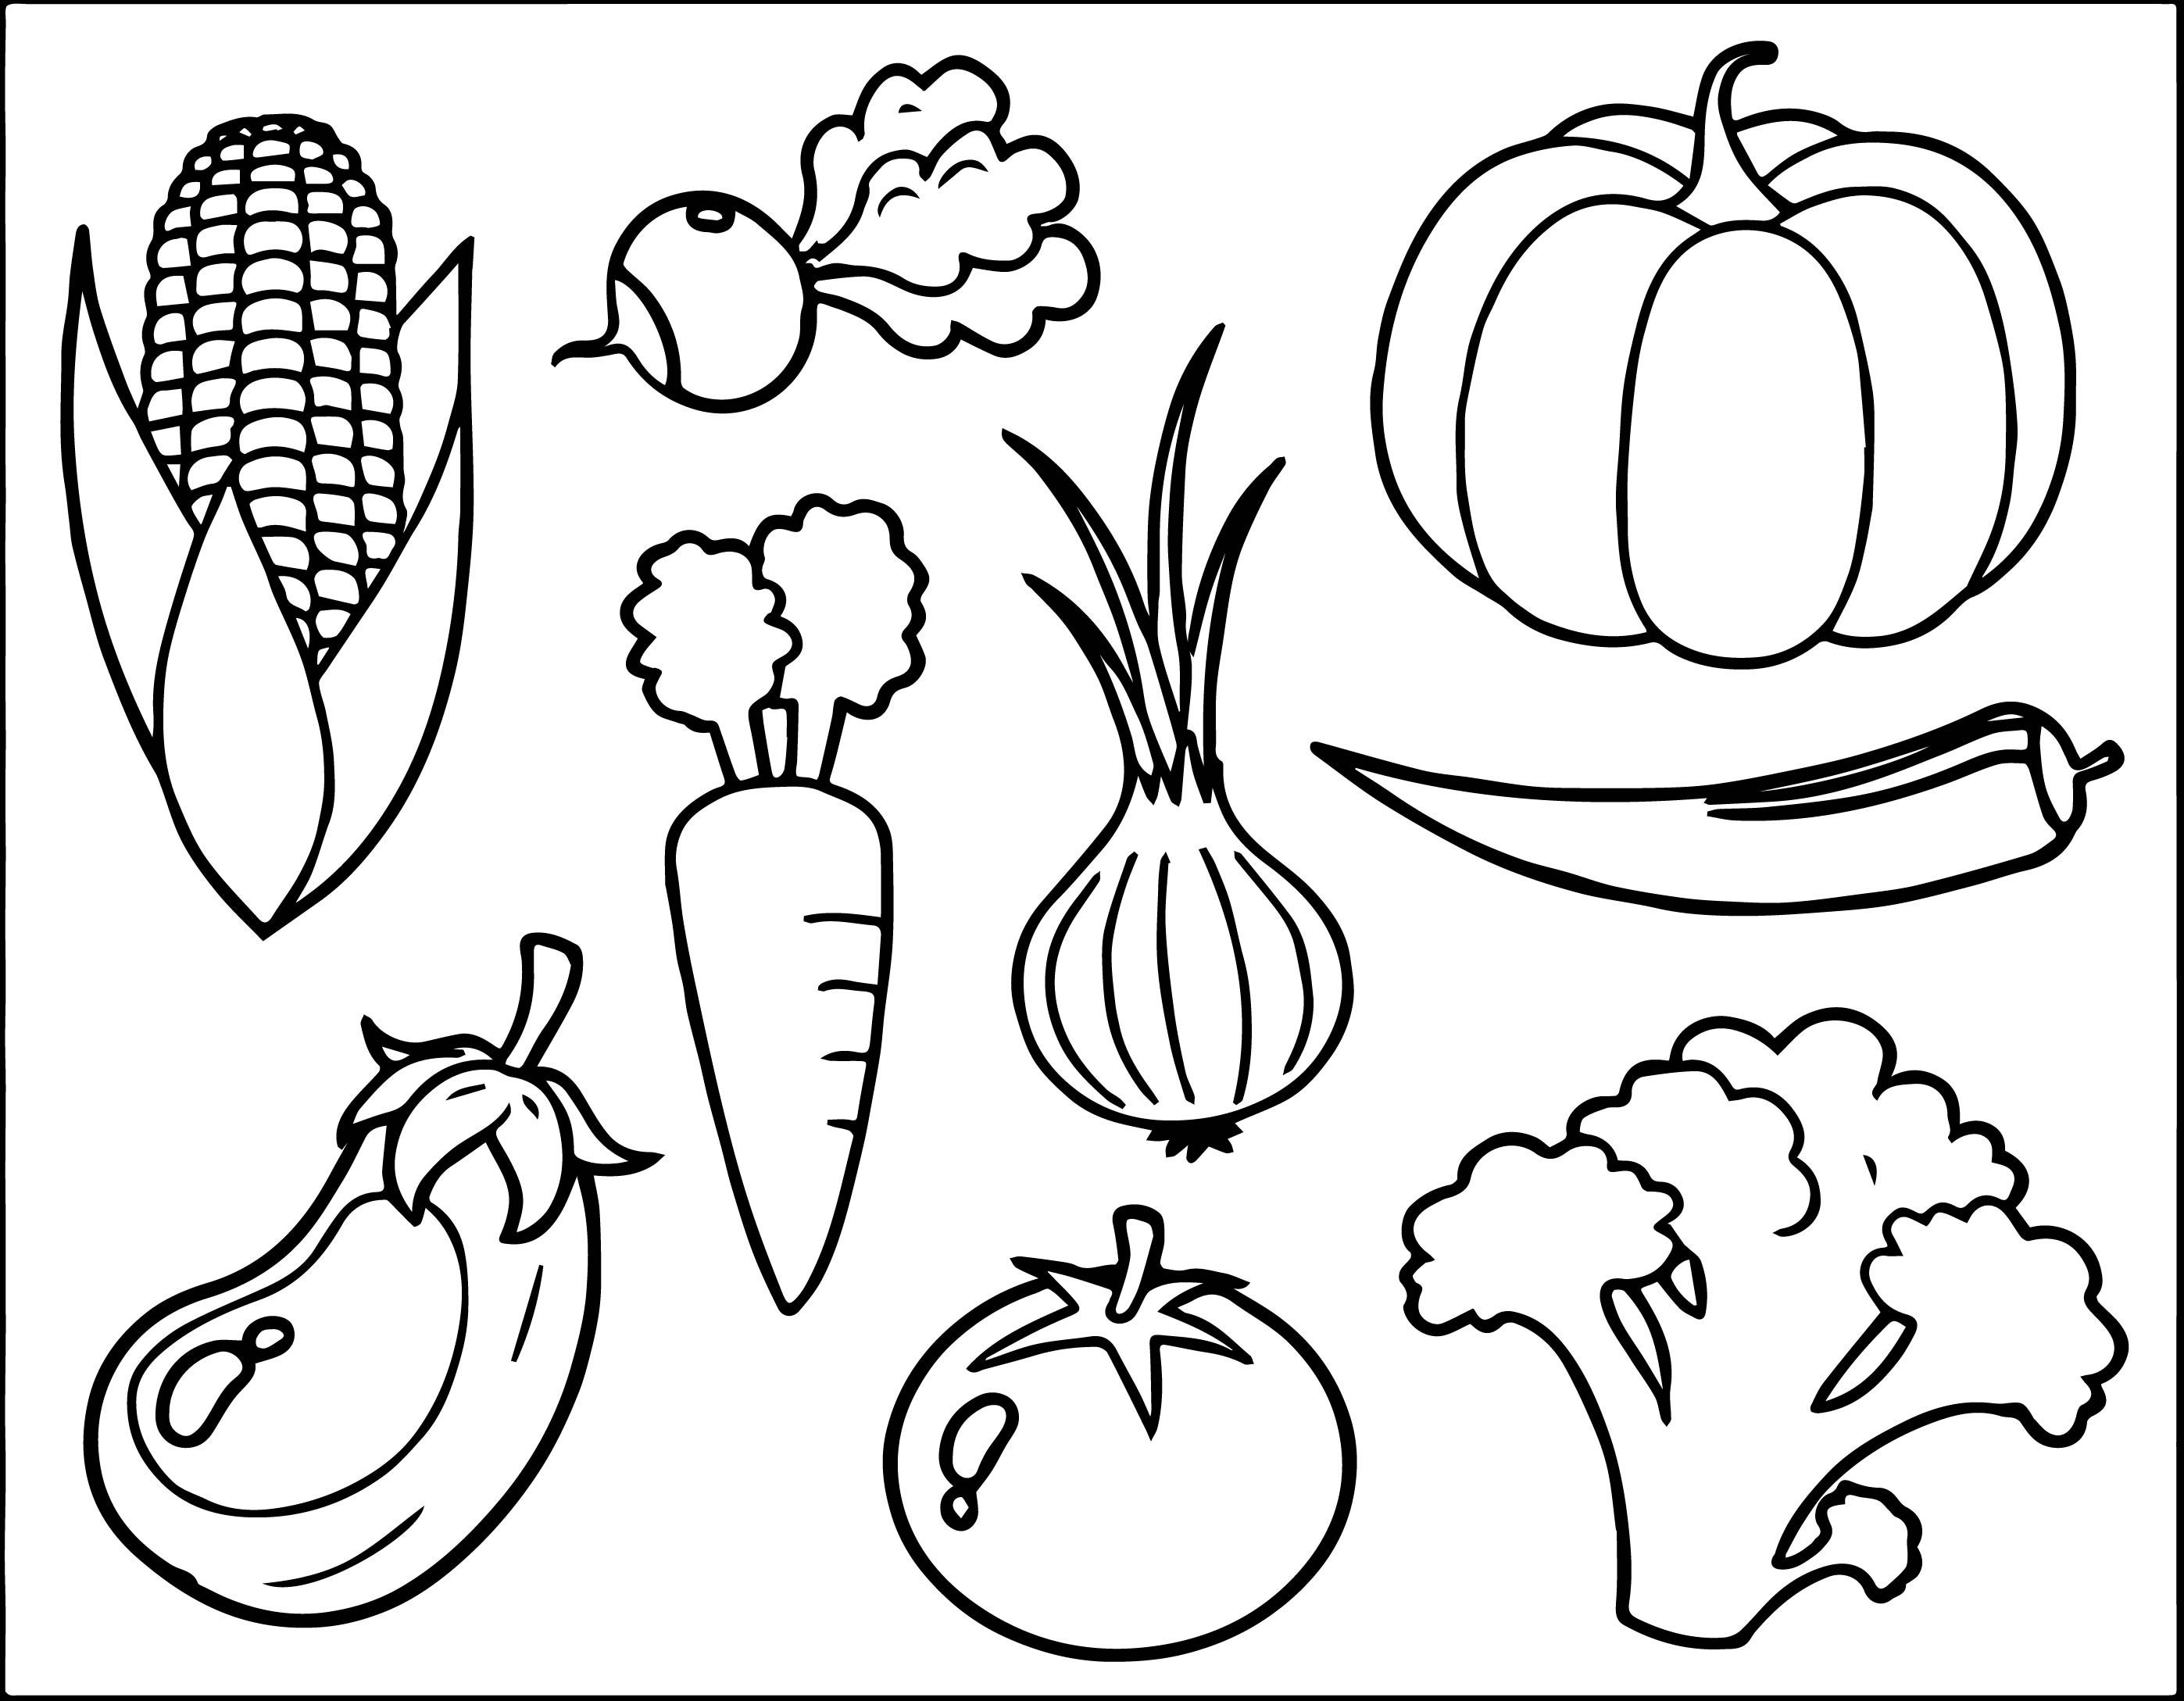 2795x2177 Fruit And Vegetables Coloring Pages Fruit And Vegetables Coloring